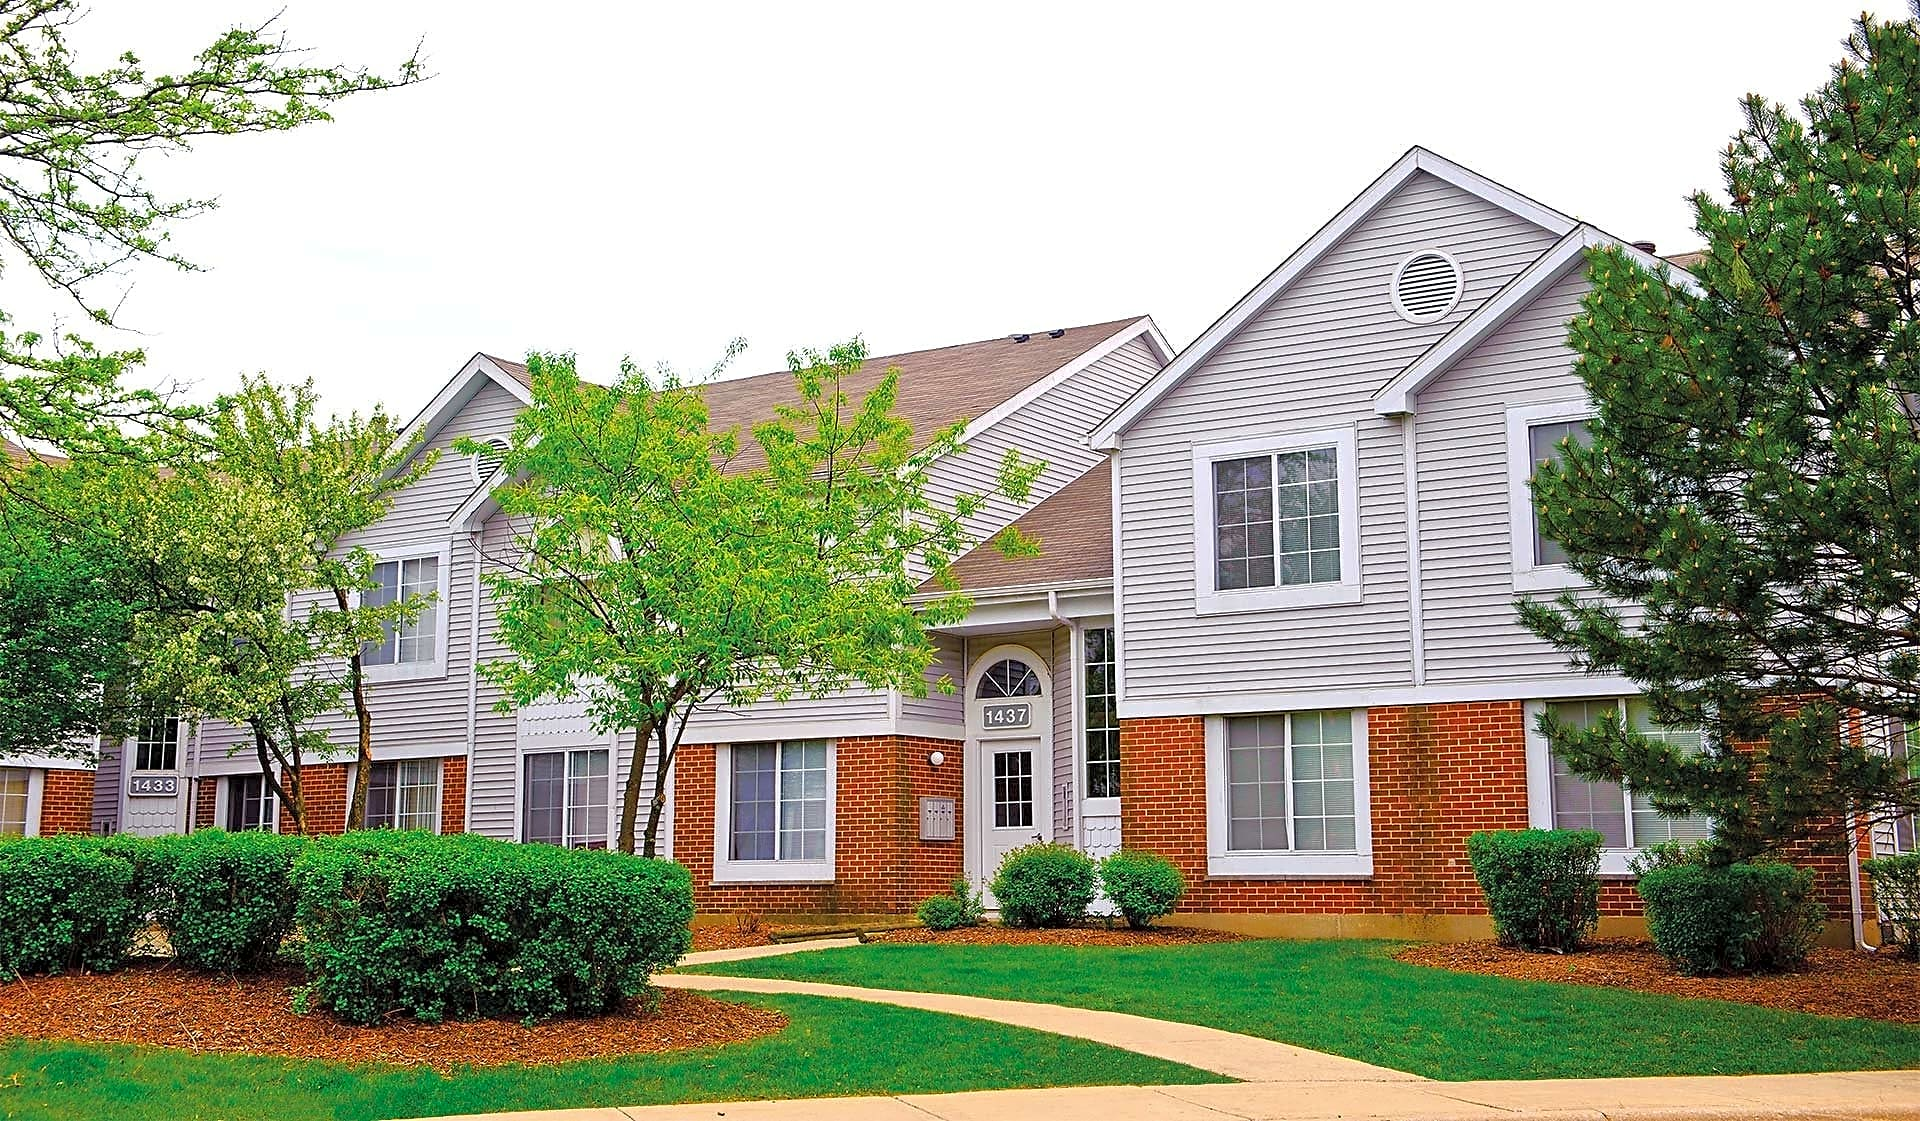 Savannah trace apartments schaumburg il 60193 for Apartment design guide sepp 65